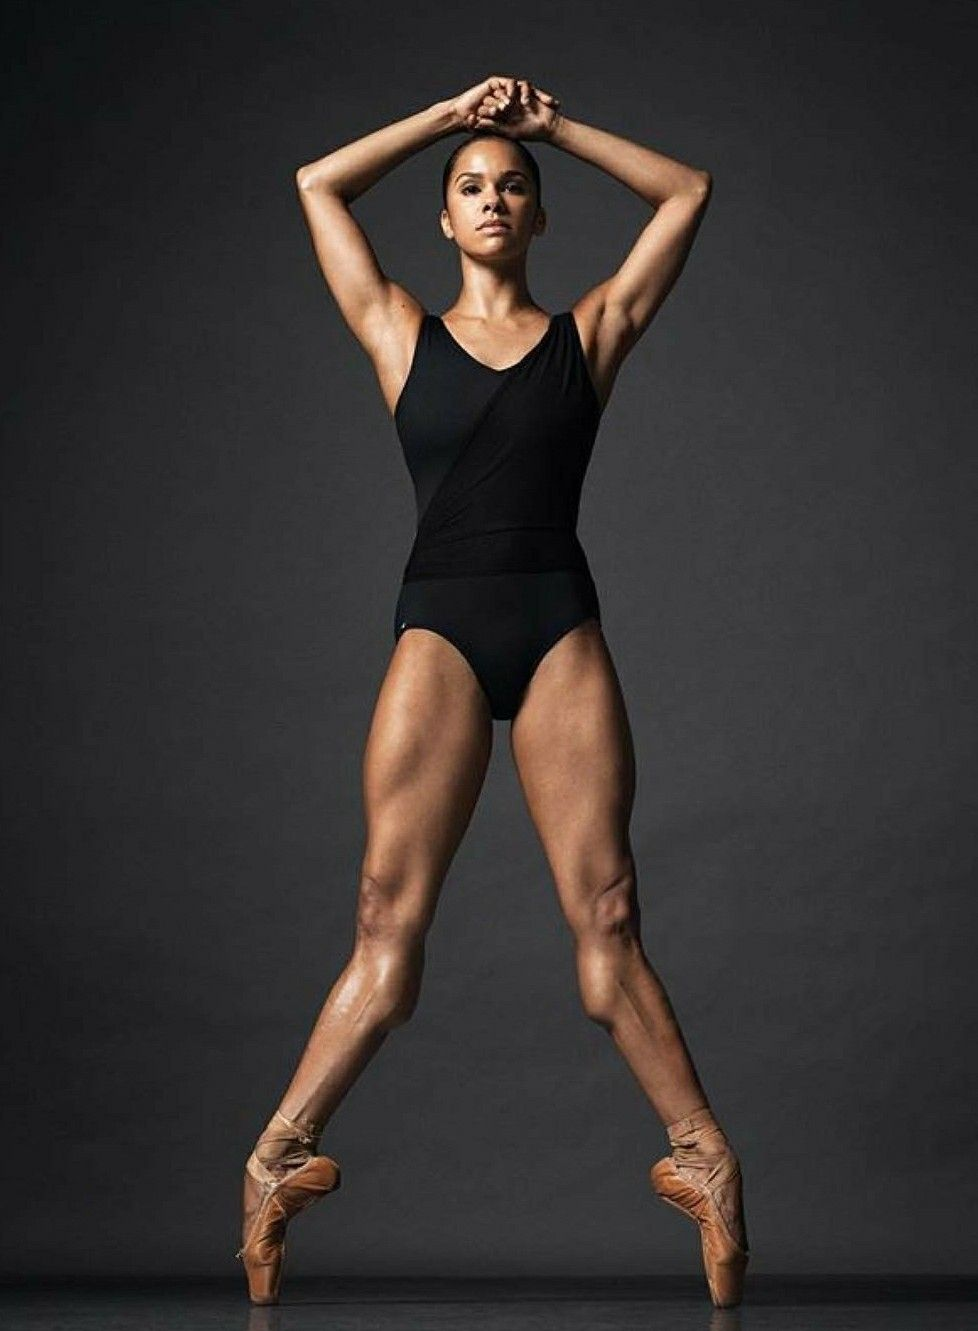 Misty Copeland nude (88 photos), Pussy, Hot, Instagram, legs 2017